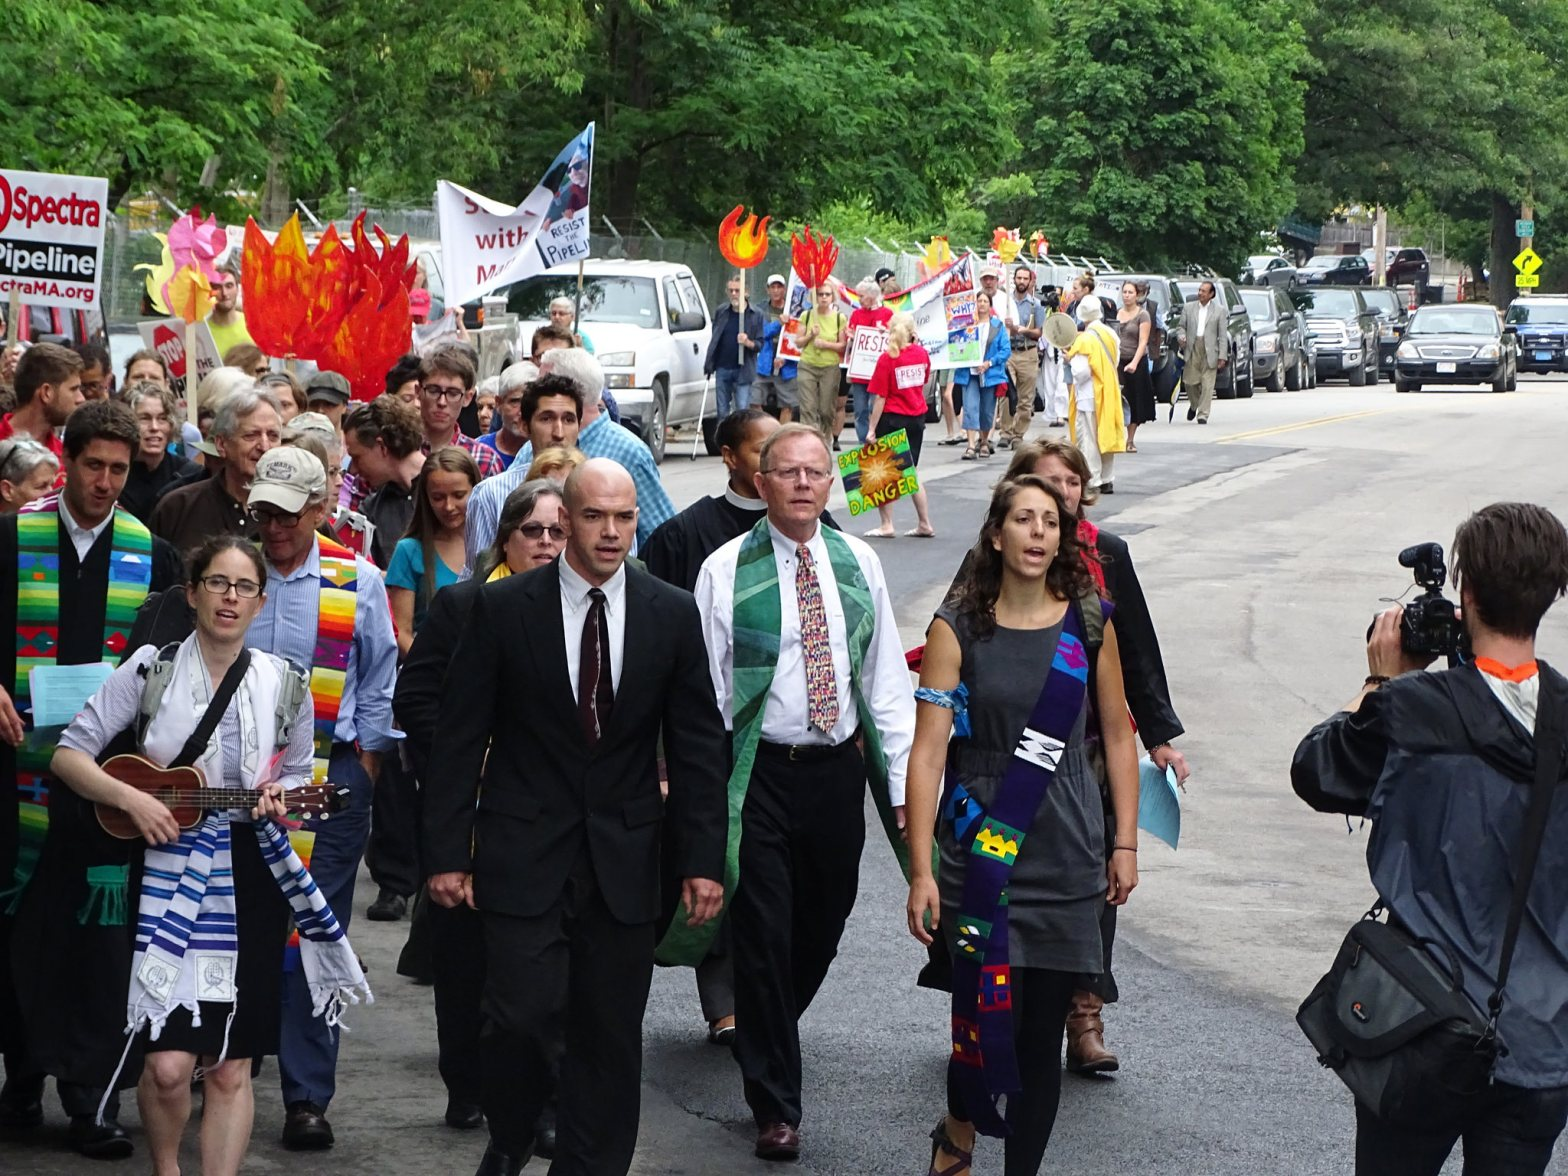 Marching During Stop Spectra Mass Graves Protest